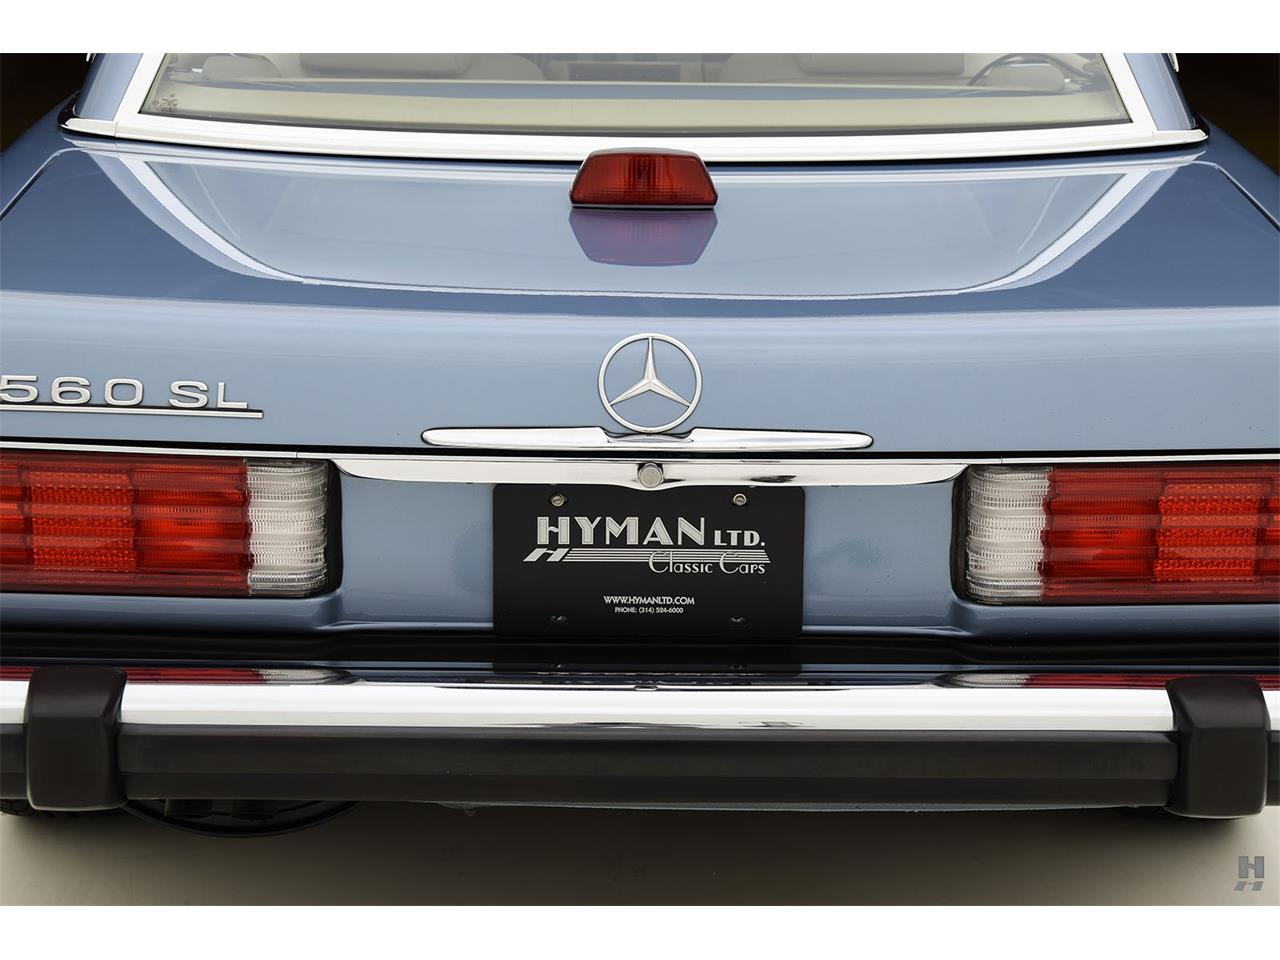 Large Picture of '87 Mercedes-Benz 560SL located in Missouri Offered by Hyman Ltd. Classic Cars - LENL